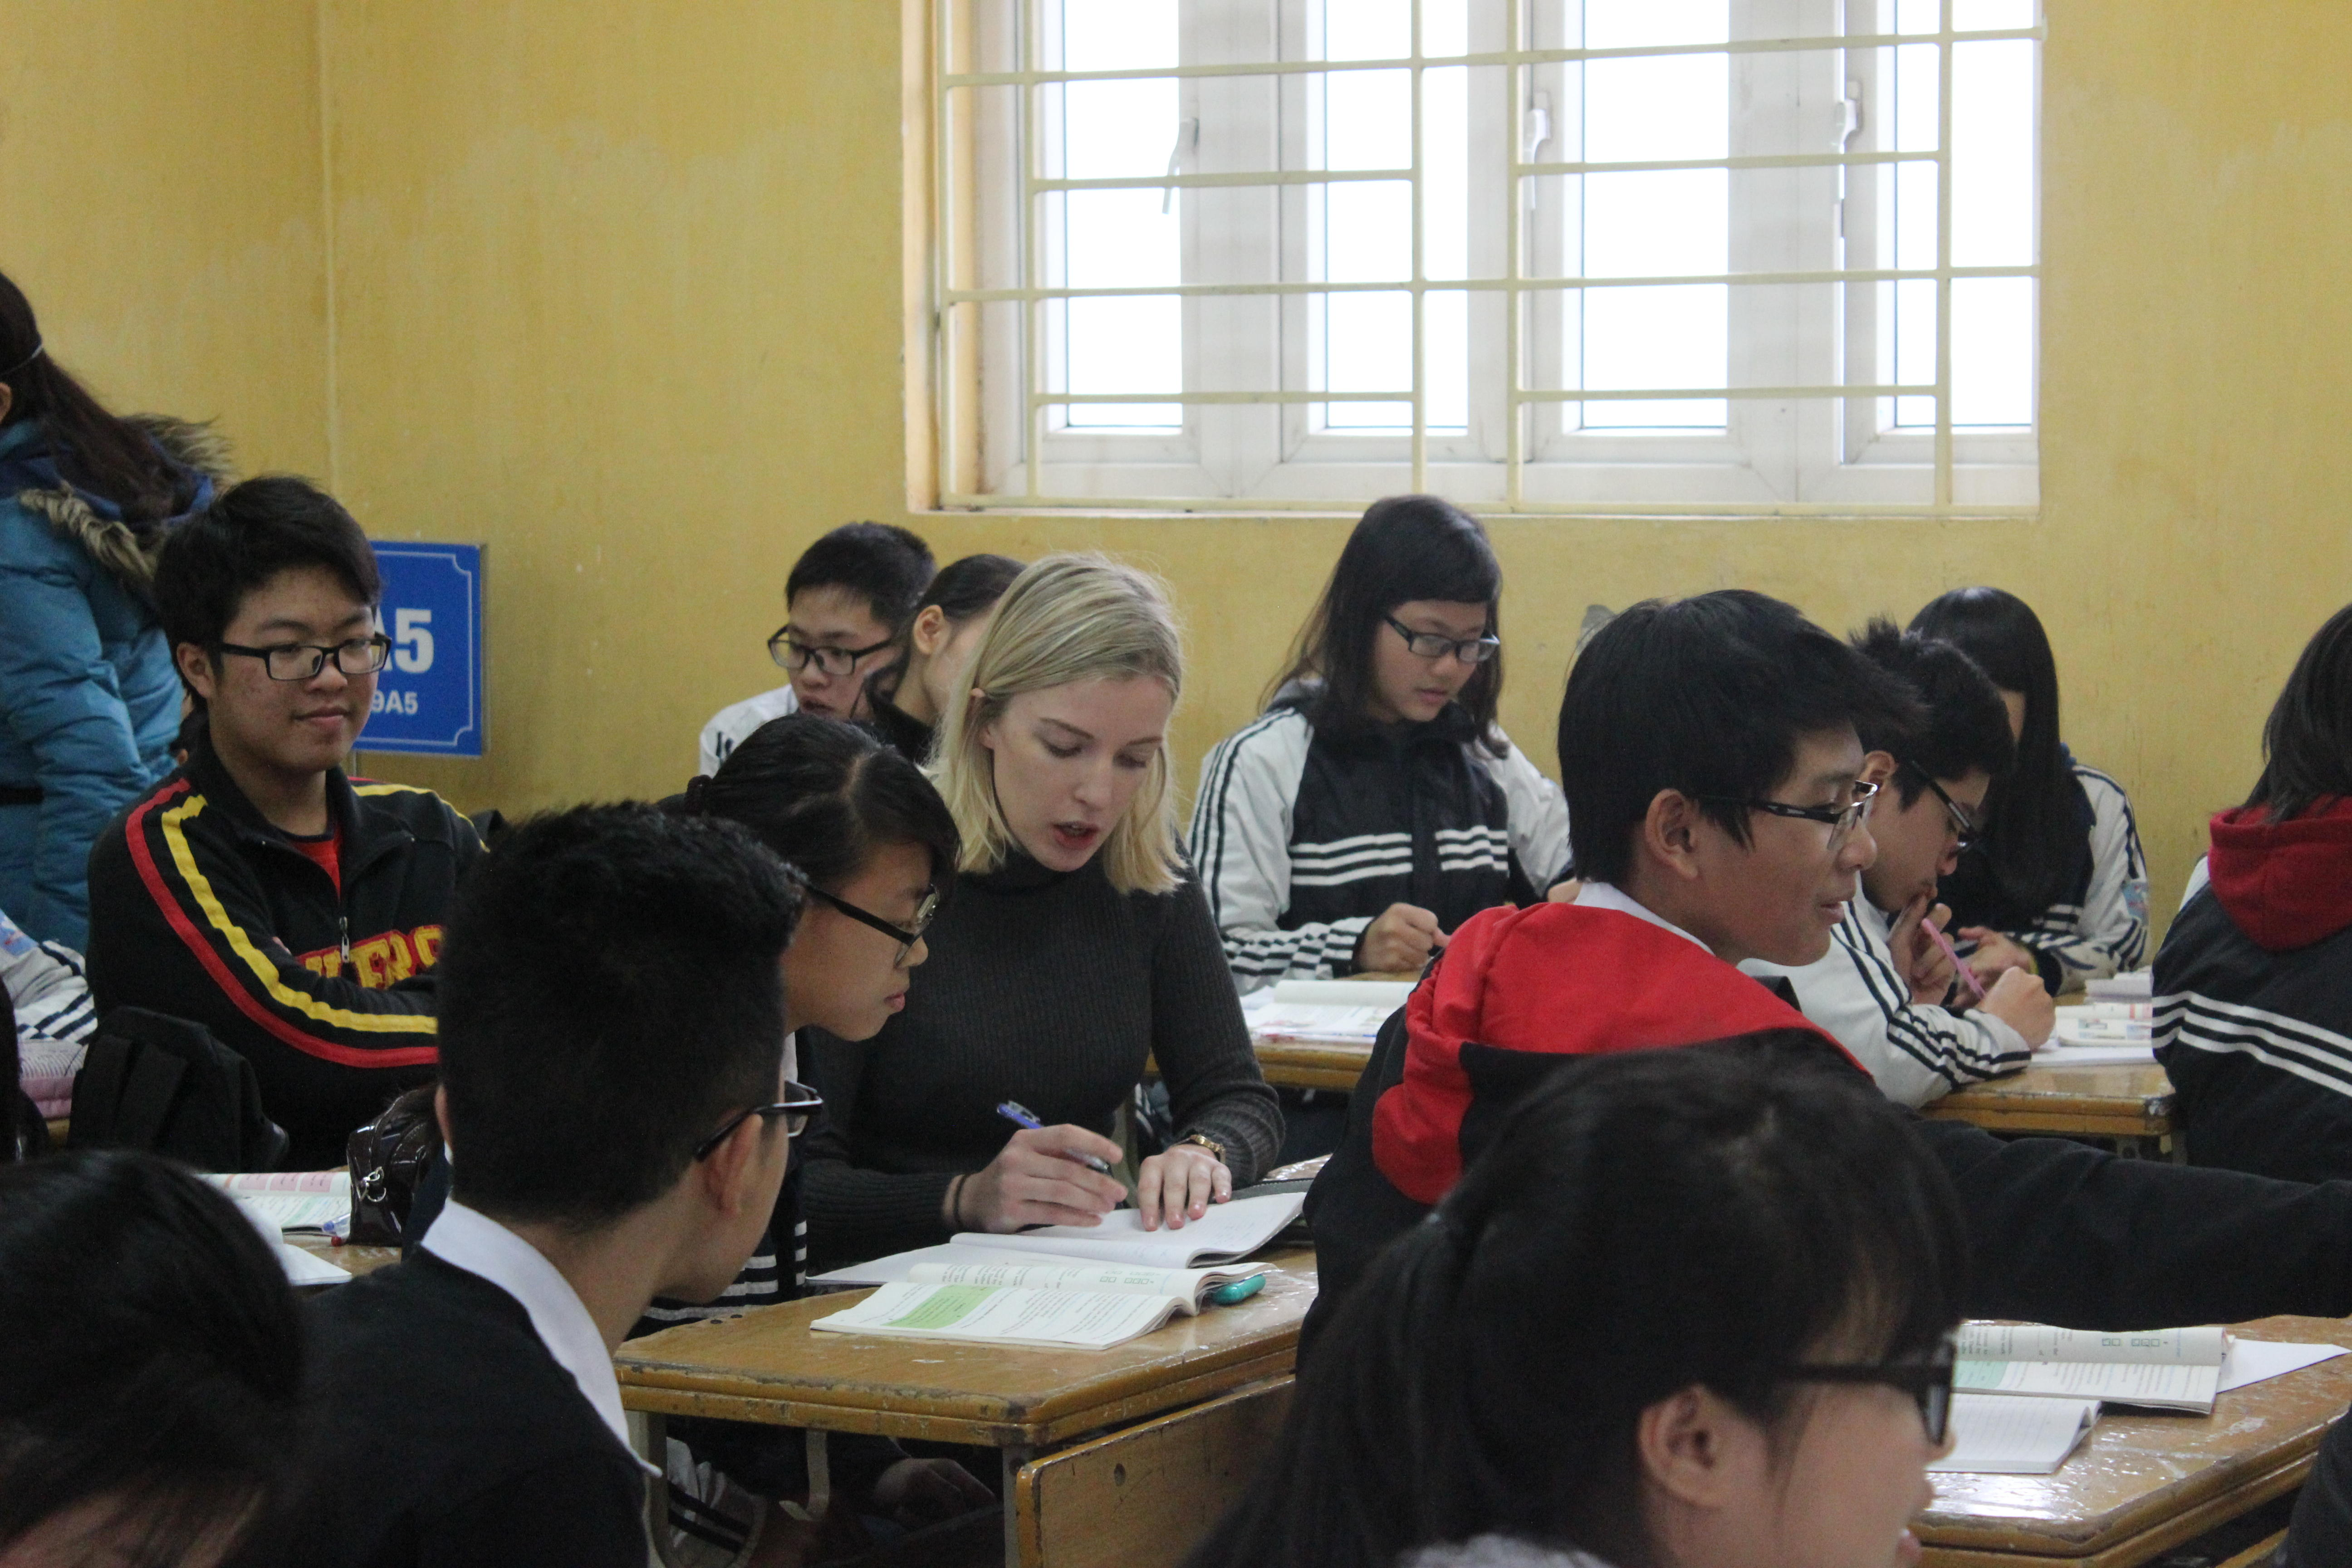 A French teaching volunteer assists a student at a placement in Vietnam